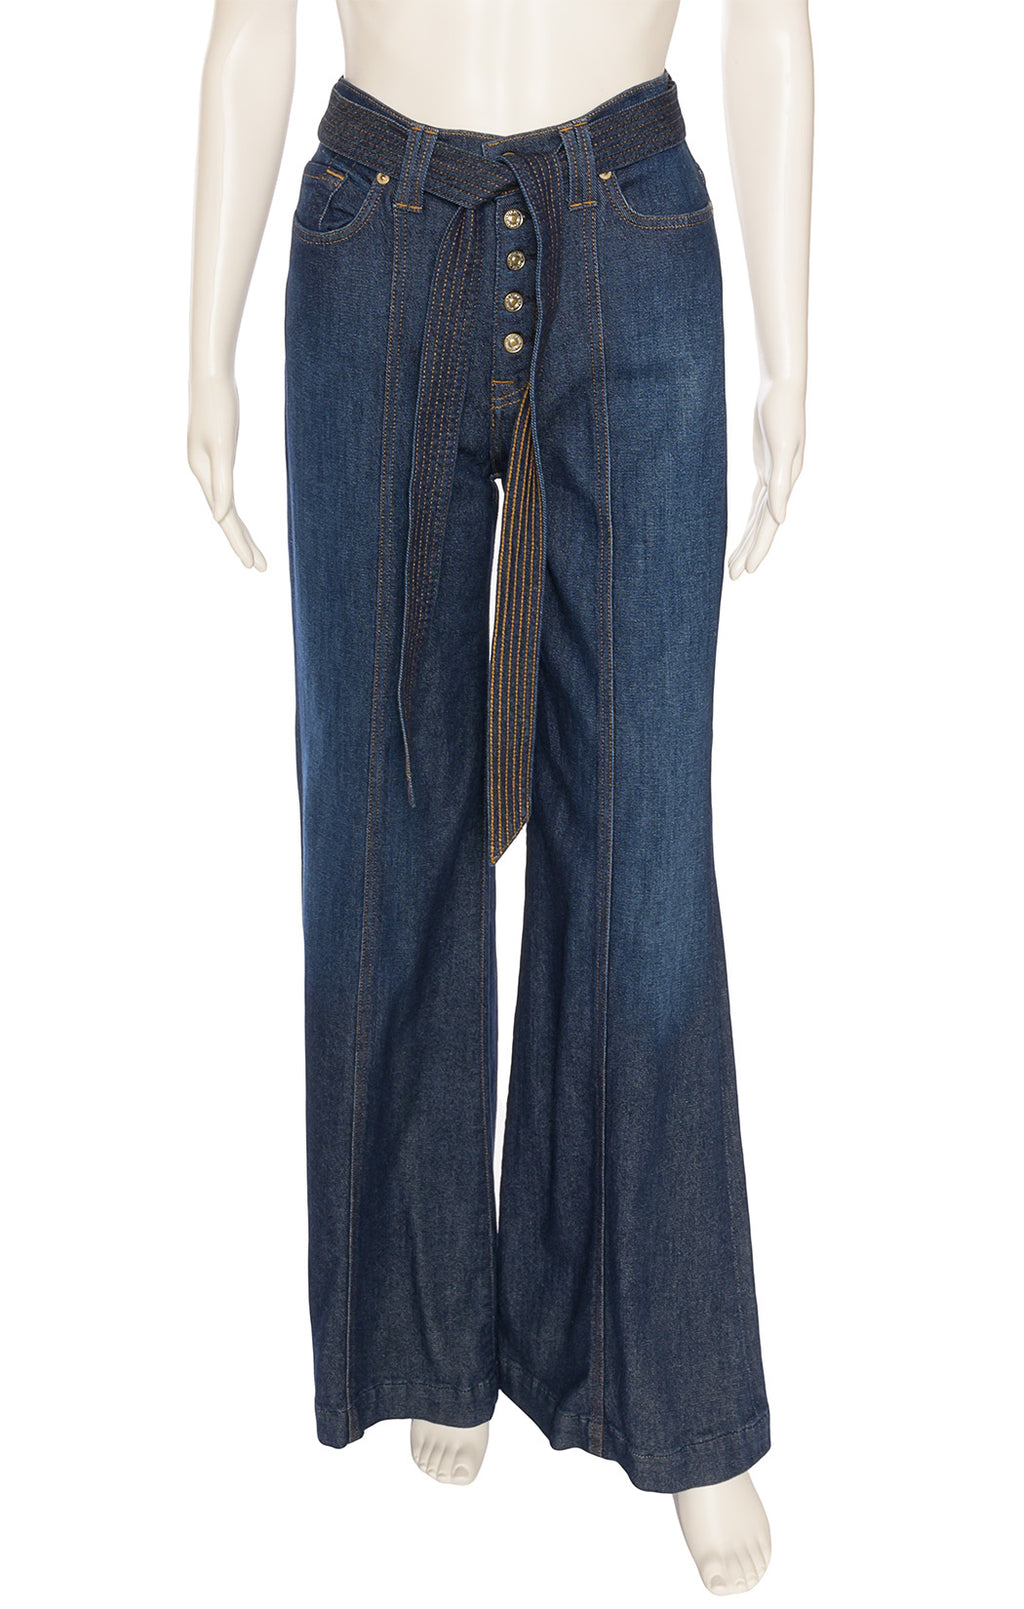 Denim high waisted jeans with front silver buttons, matching belt, five pocket bell bottoms